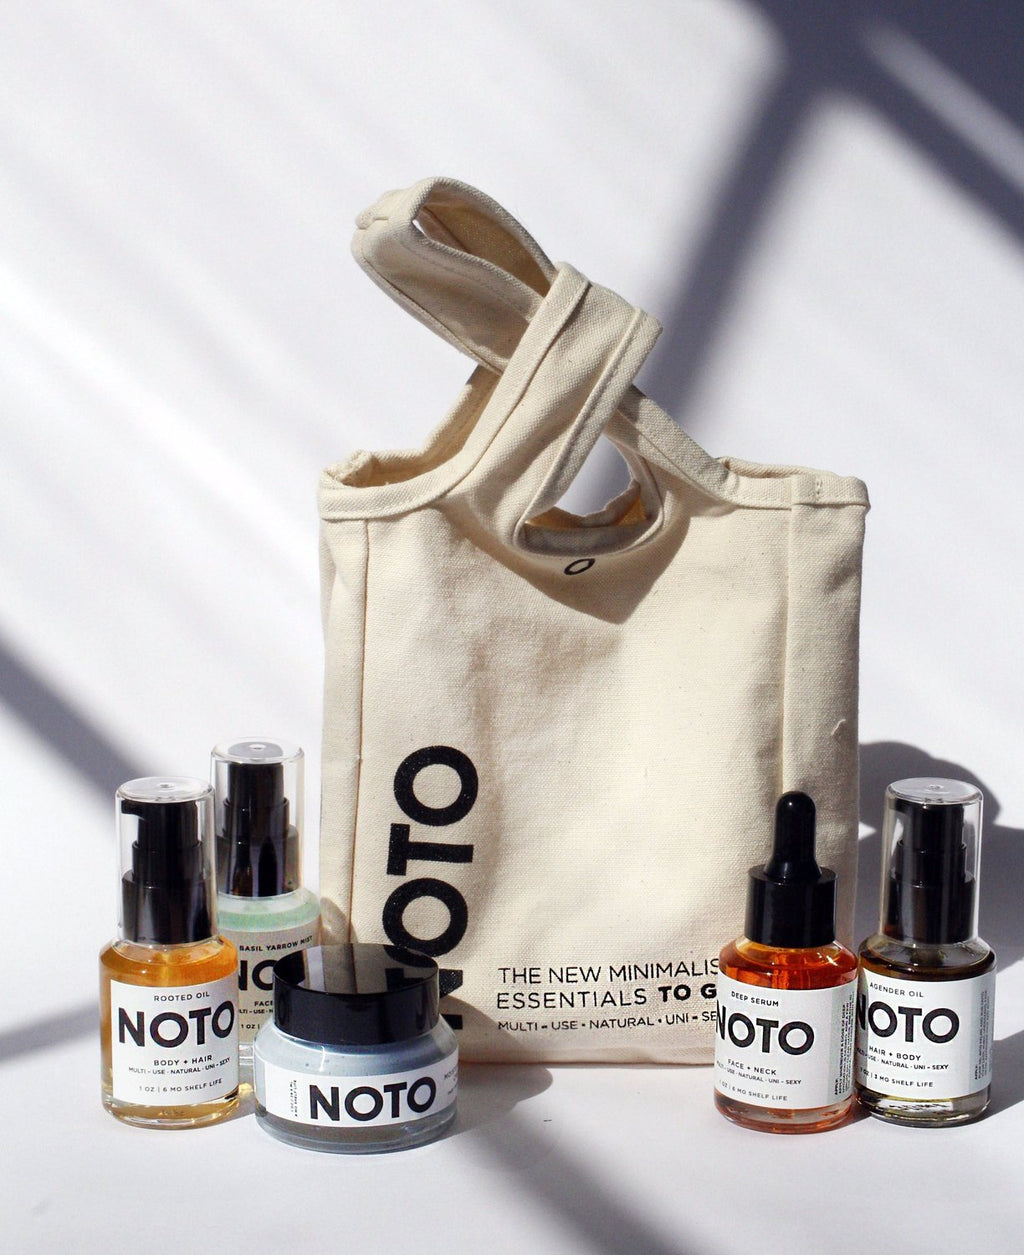 Noto To Go Travel Set Beauty Everywhere You Go on Makers Workshop